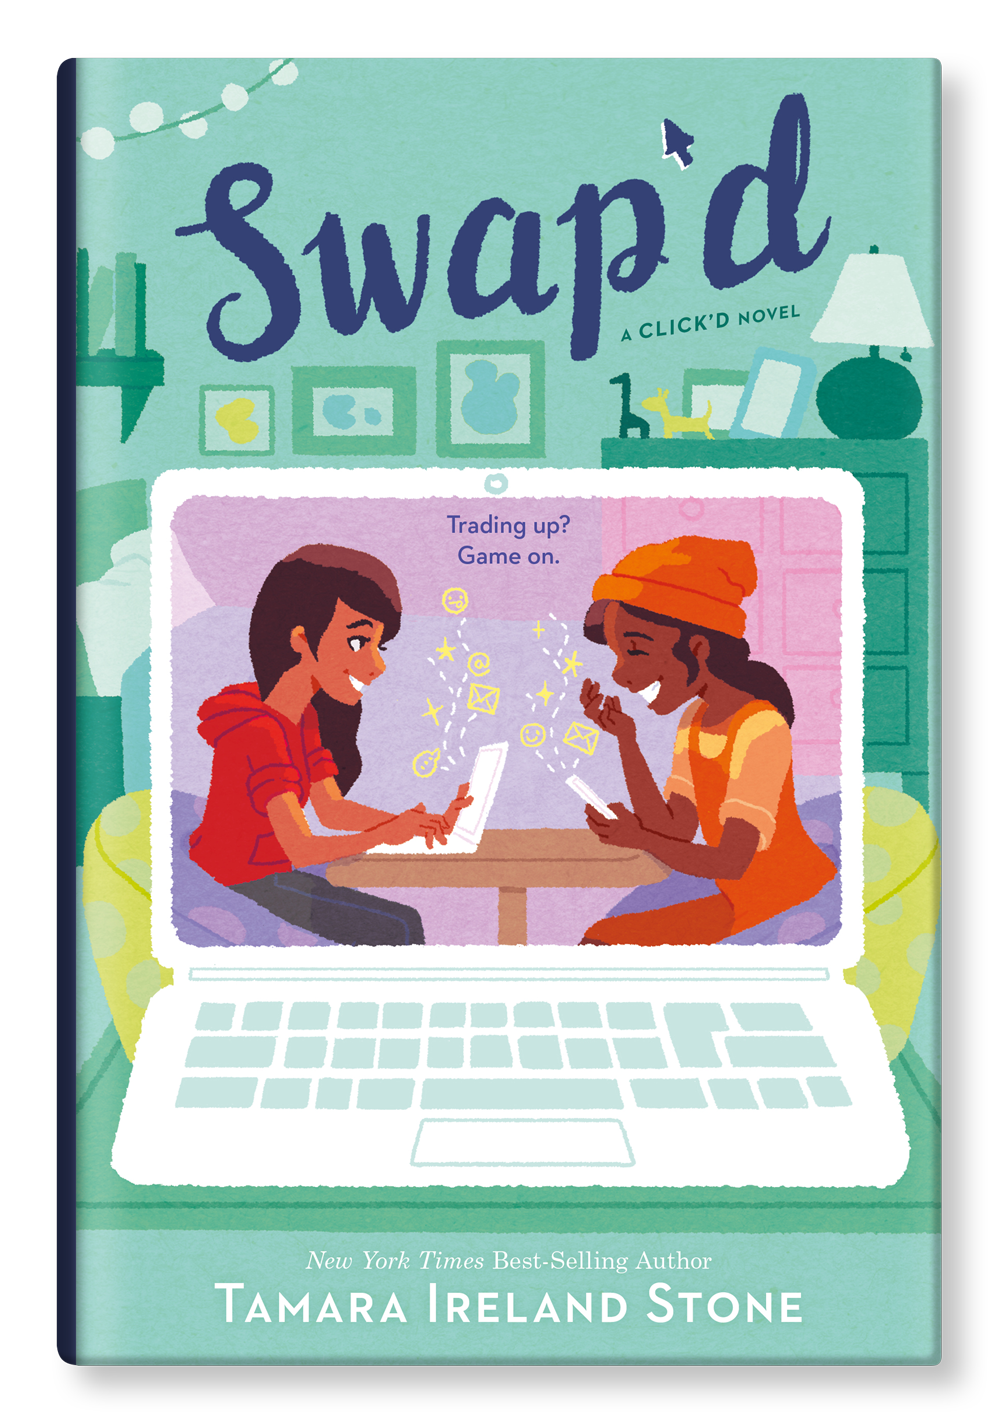 Swapd_Clickd2_cover-web.png